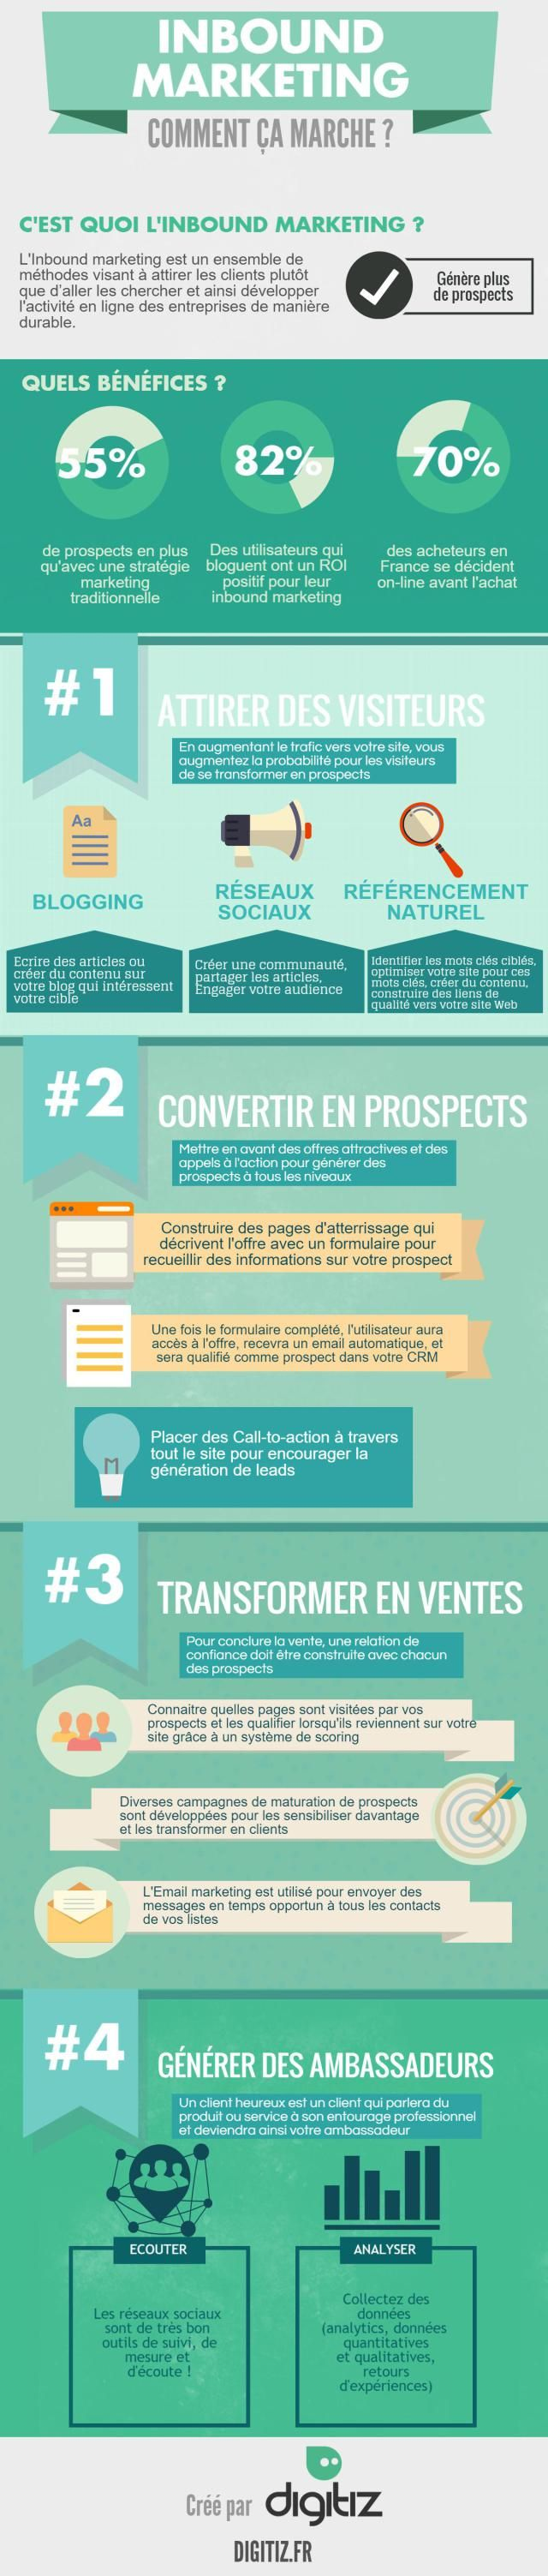 Infographie Inbound marketing